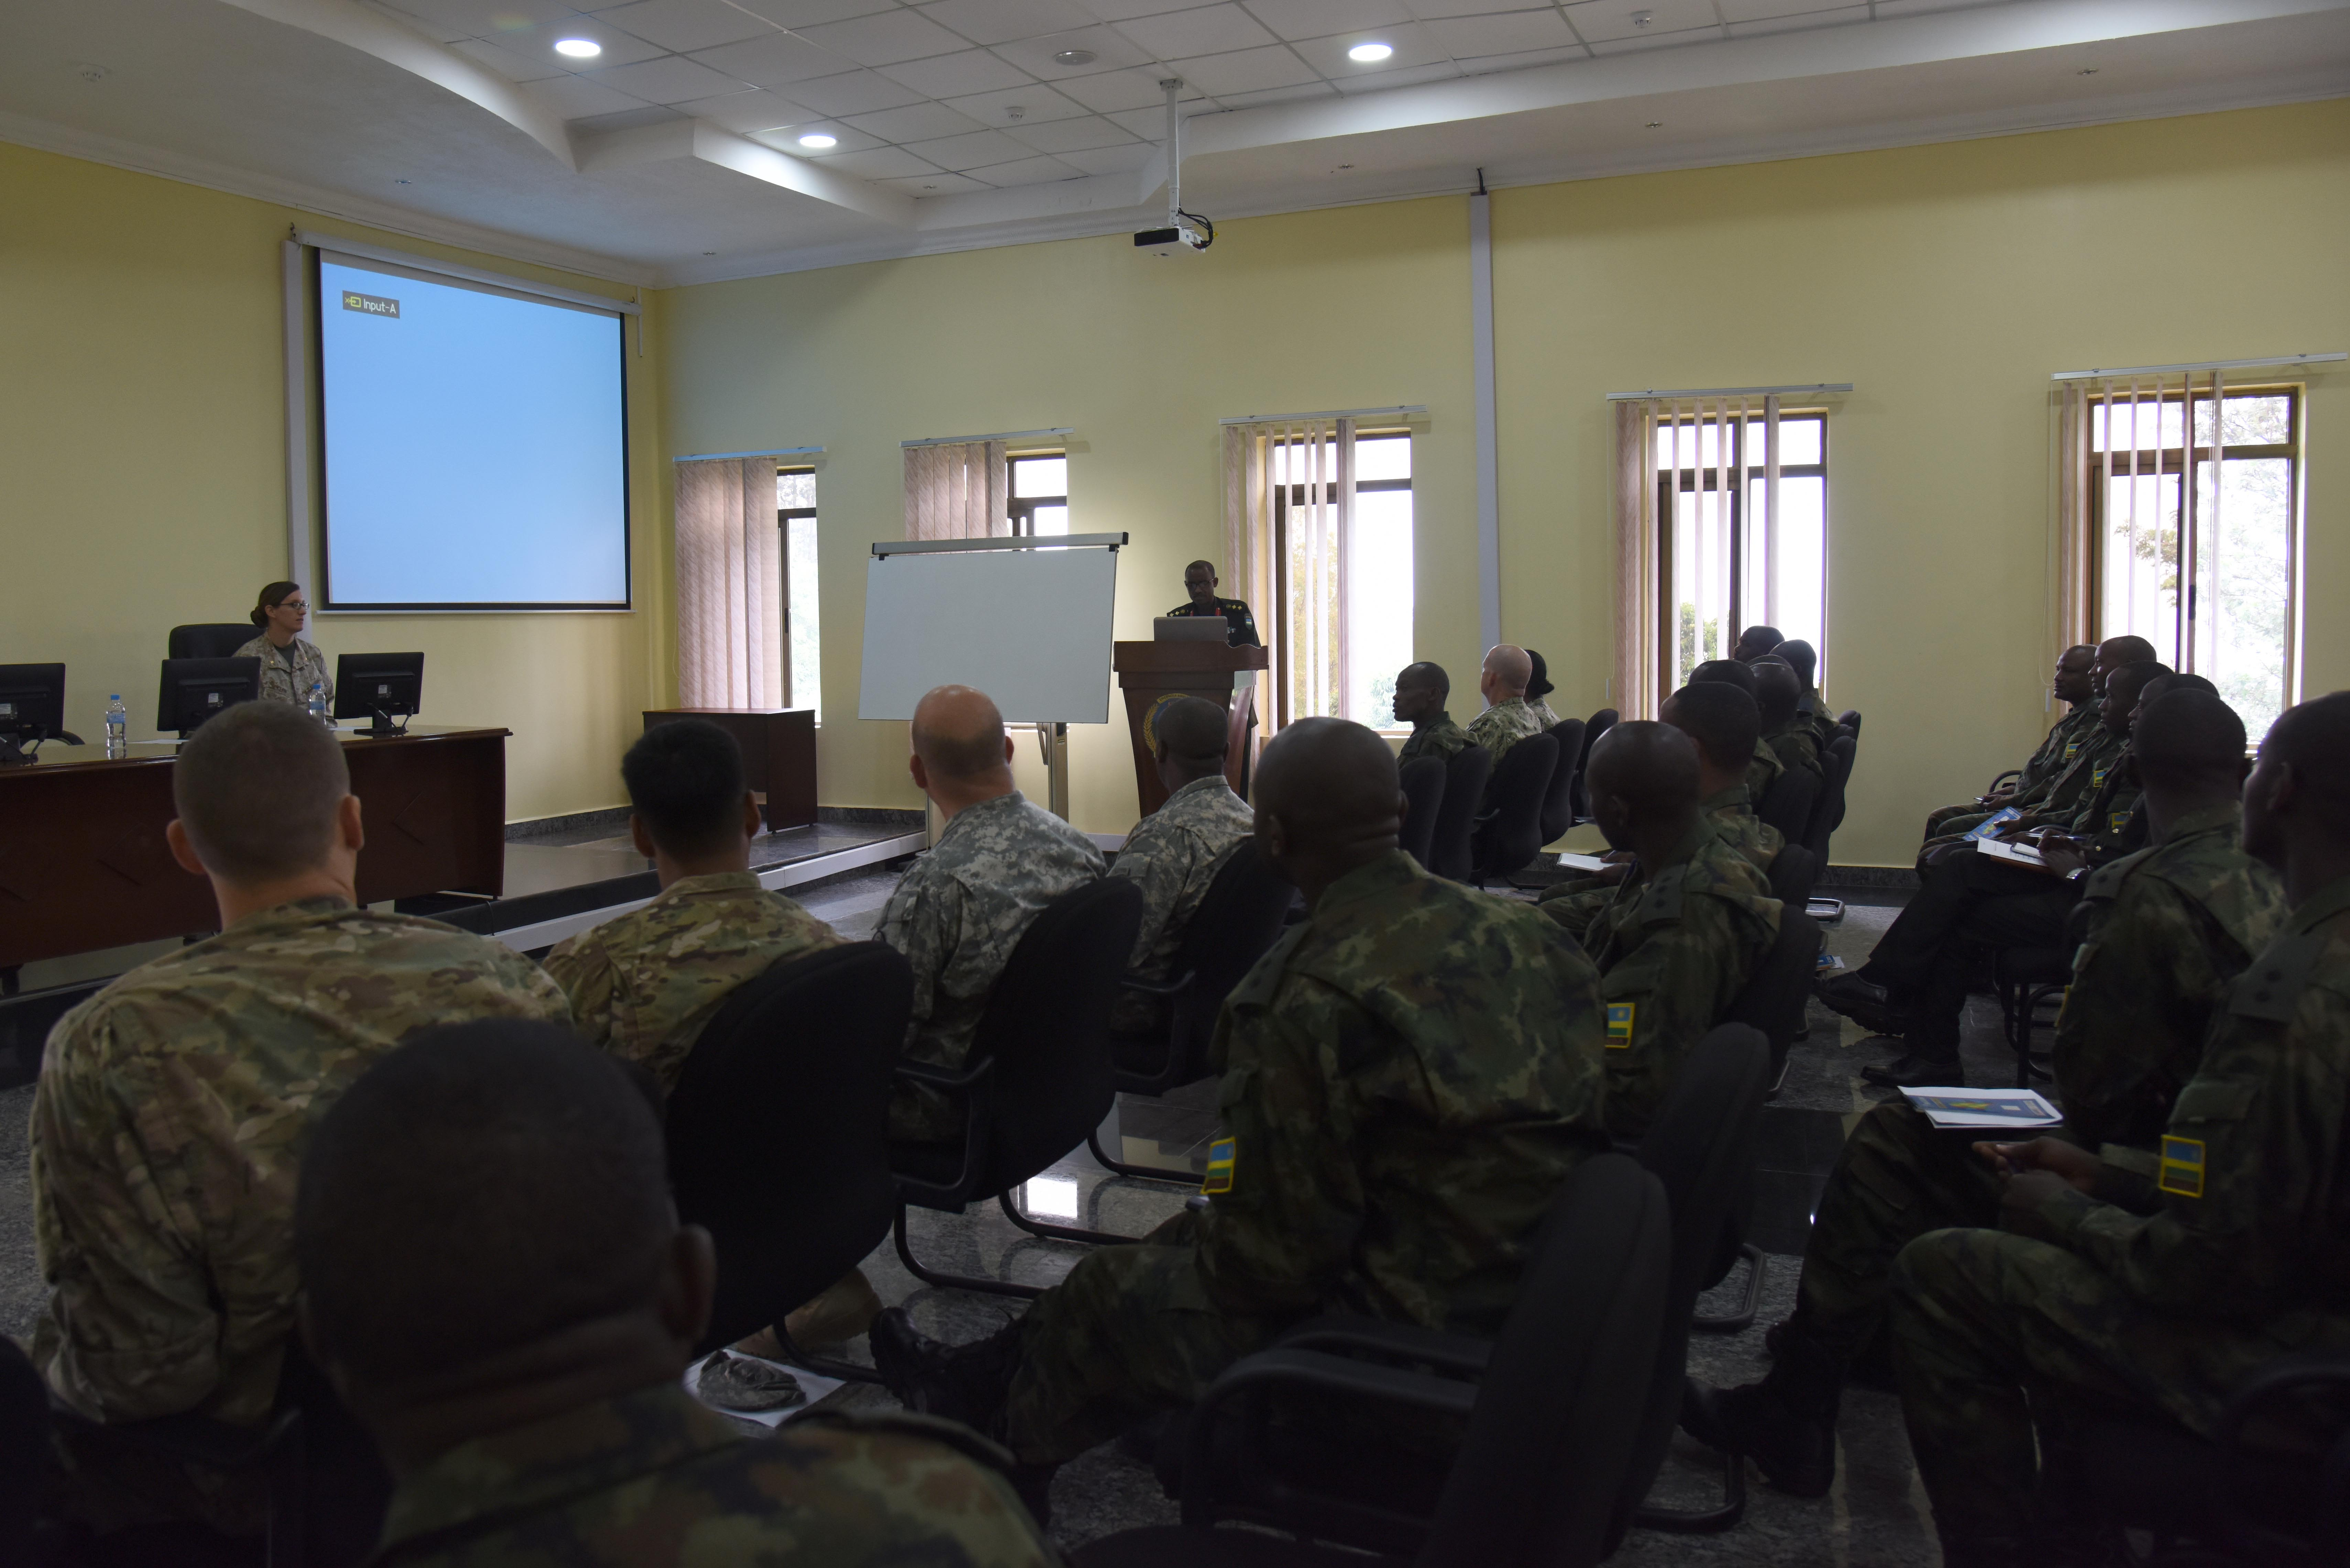 Rwandan Defense Force Col. Faustin Kalisa, Engineering Brigade commander, gives opening remarks for military-to-military sharing of best practices at the RDF Engineering Brigade Headquarters near Kigali, Rwanda, Dec. 15, 2015. Engineers from Combined Joint Task Force–Horn of Africa exchanged information with RDF engineers about how to plan expeditionary base camps from the ground up. (U.S. Air Force photo by Staff Sgt. Victoria Sneed)